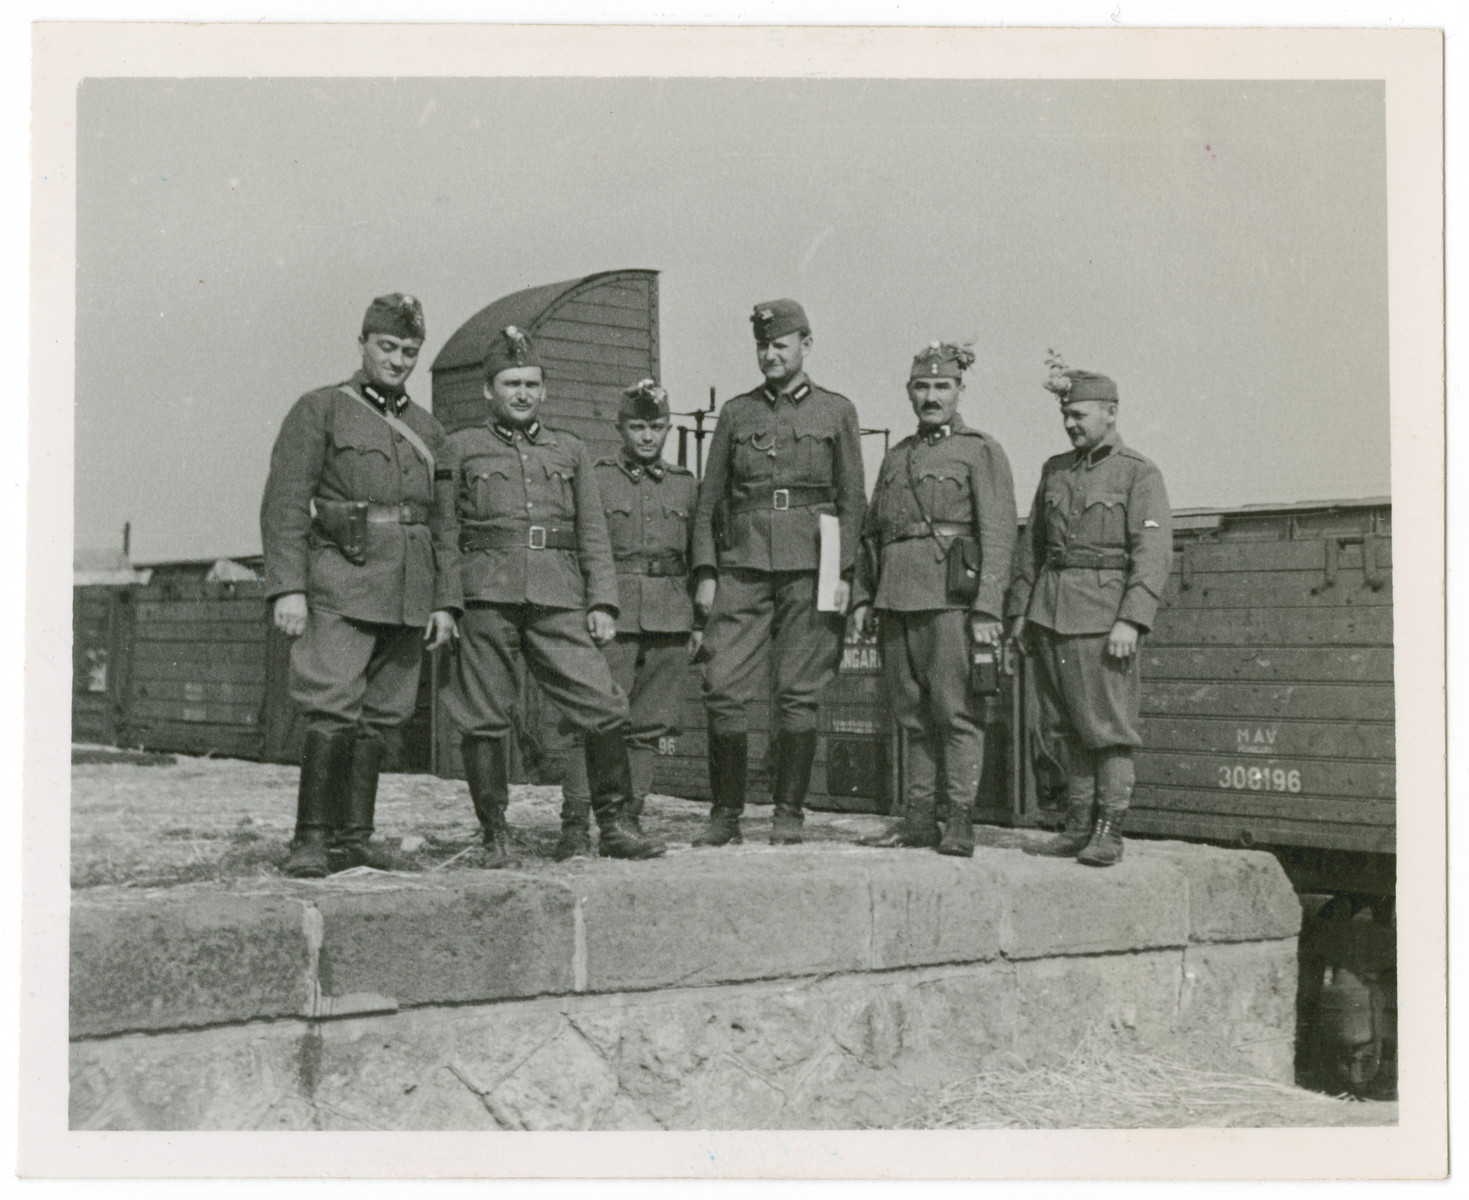 Soldiers with the Hungarian Army's 20th Infantry Division pose before an unidentified railway.